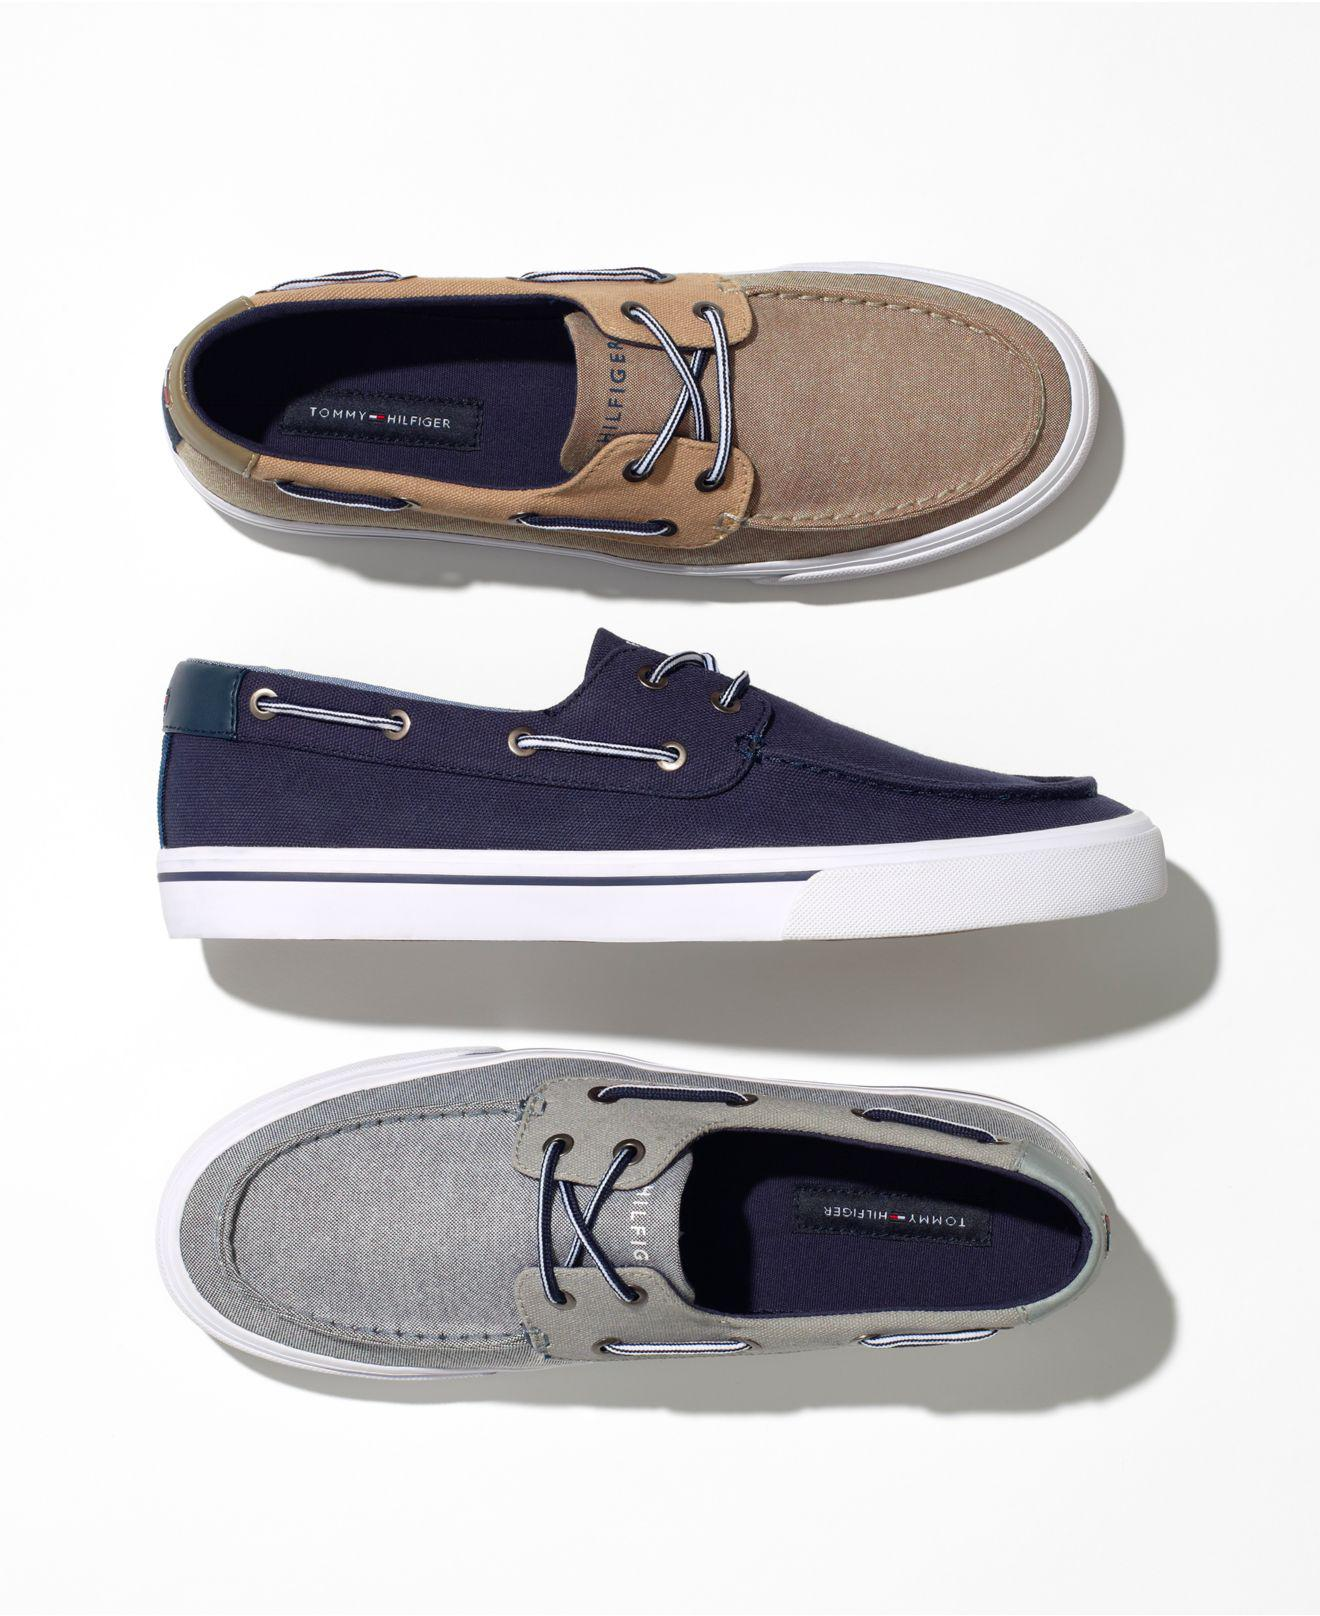 4d3210272d9985 Lyst - Tommy Hilfiger Phinx Canvas Boat Shoes